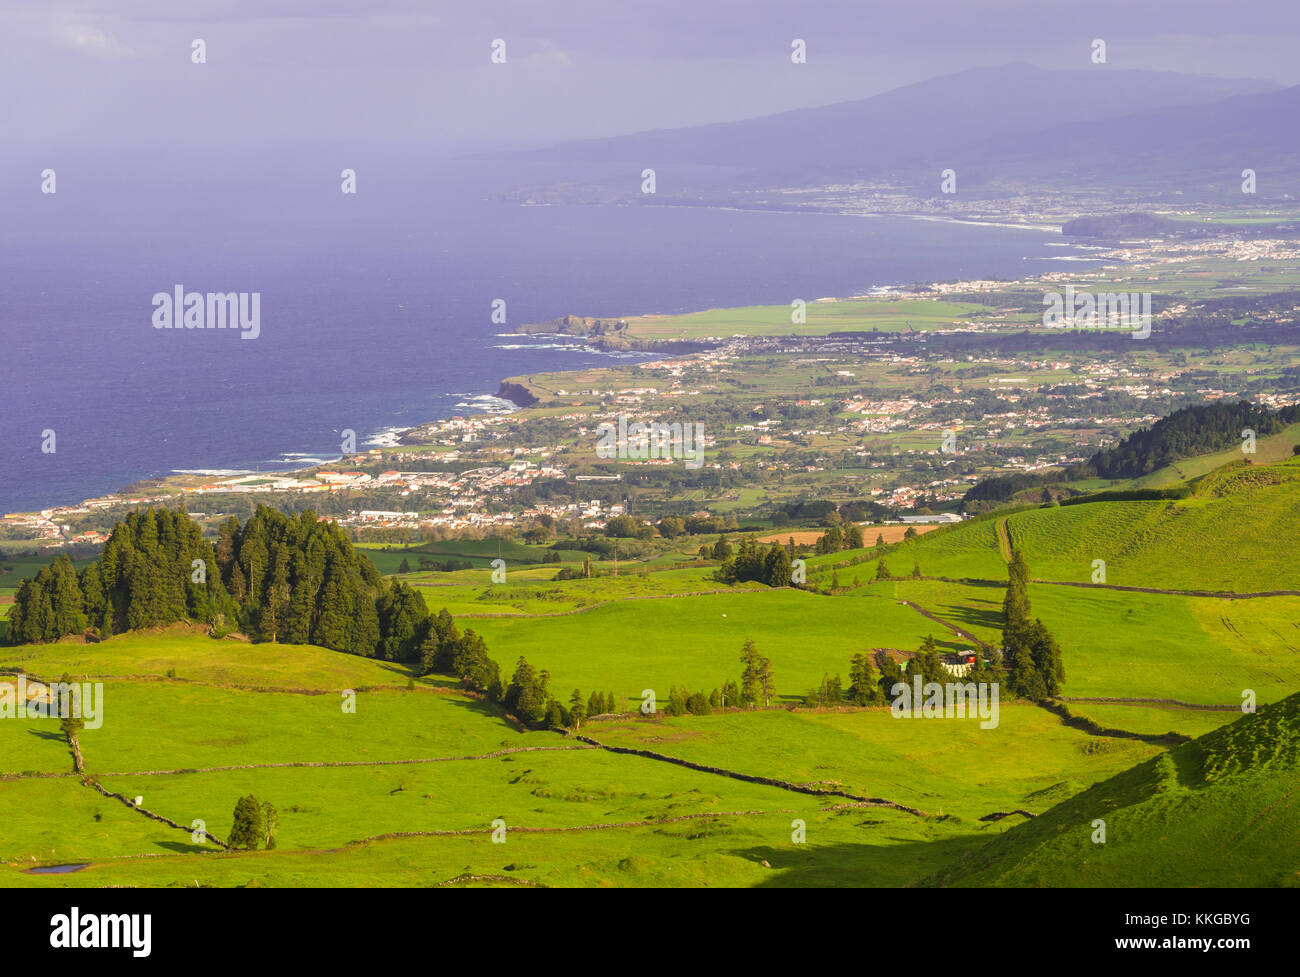 Landscape in Sao Miguel Island, Azores, Portugal, as seen from Coal Peak viewpoint. Capelas in the background - Stock Image